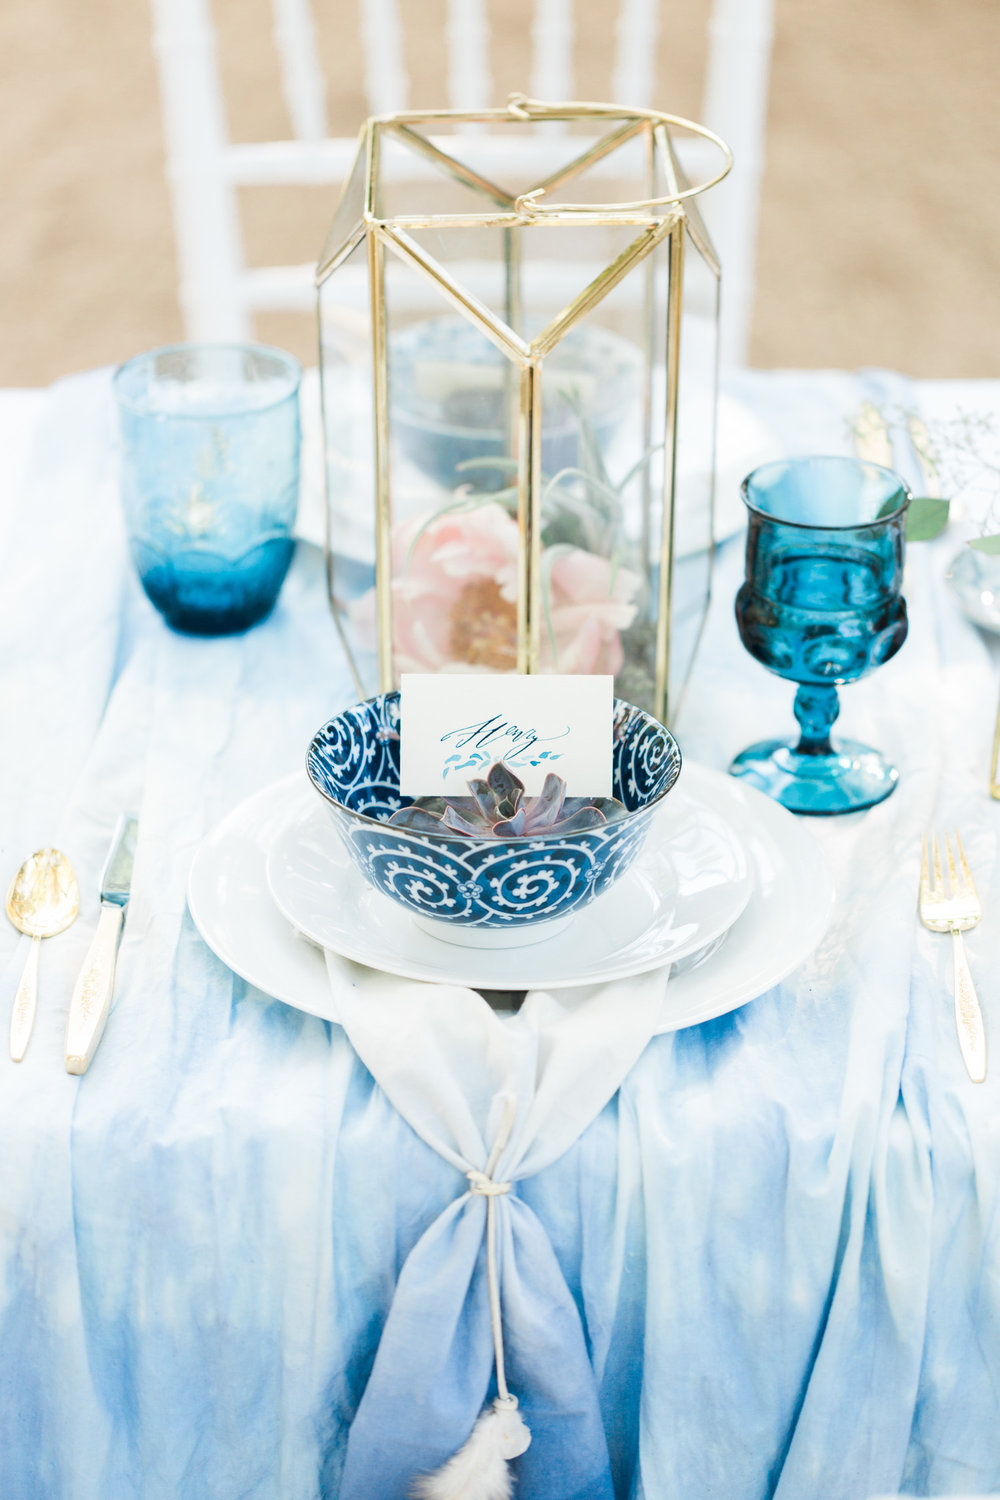 Bohemian indigo table setting with accents of gold and succulent placecard holders with calligraphy by Betsy Dunlap